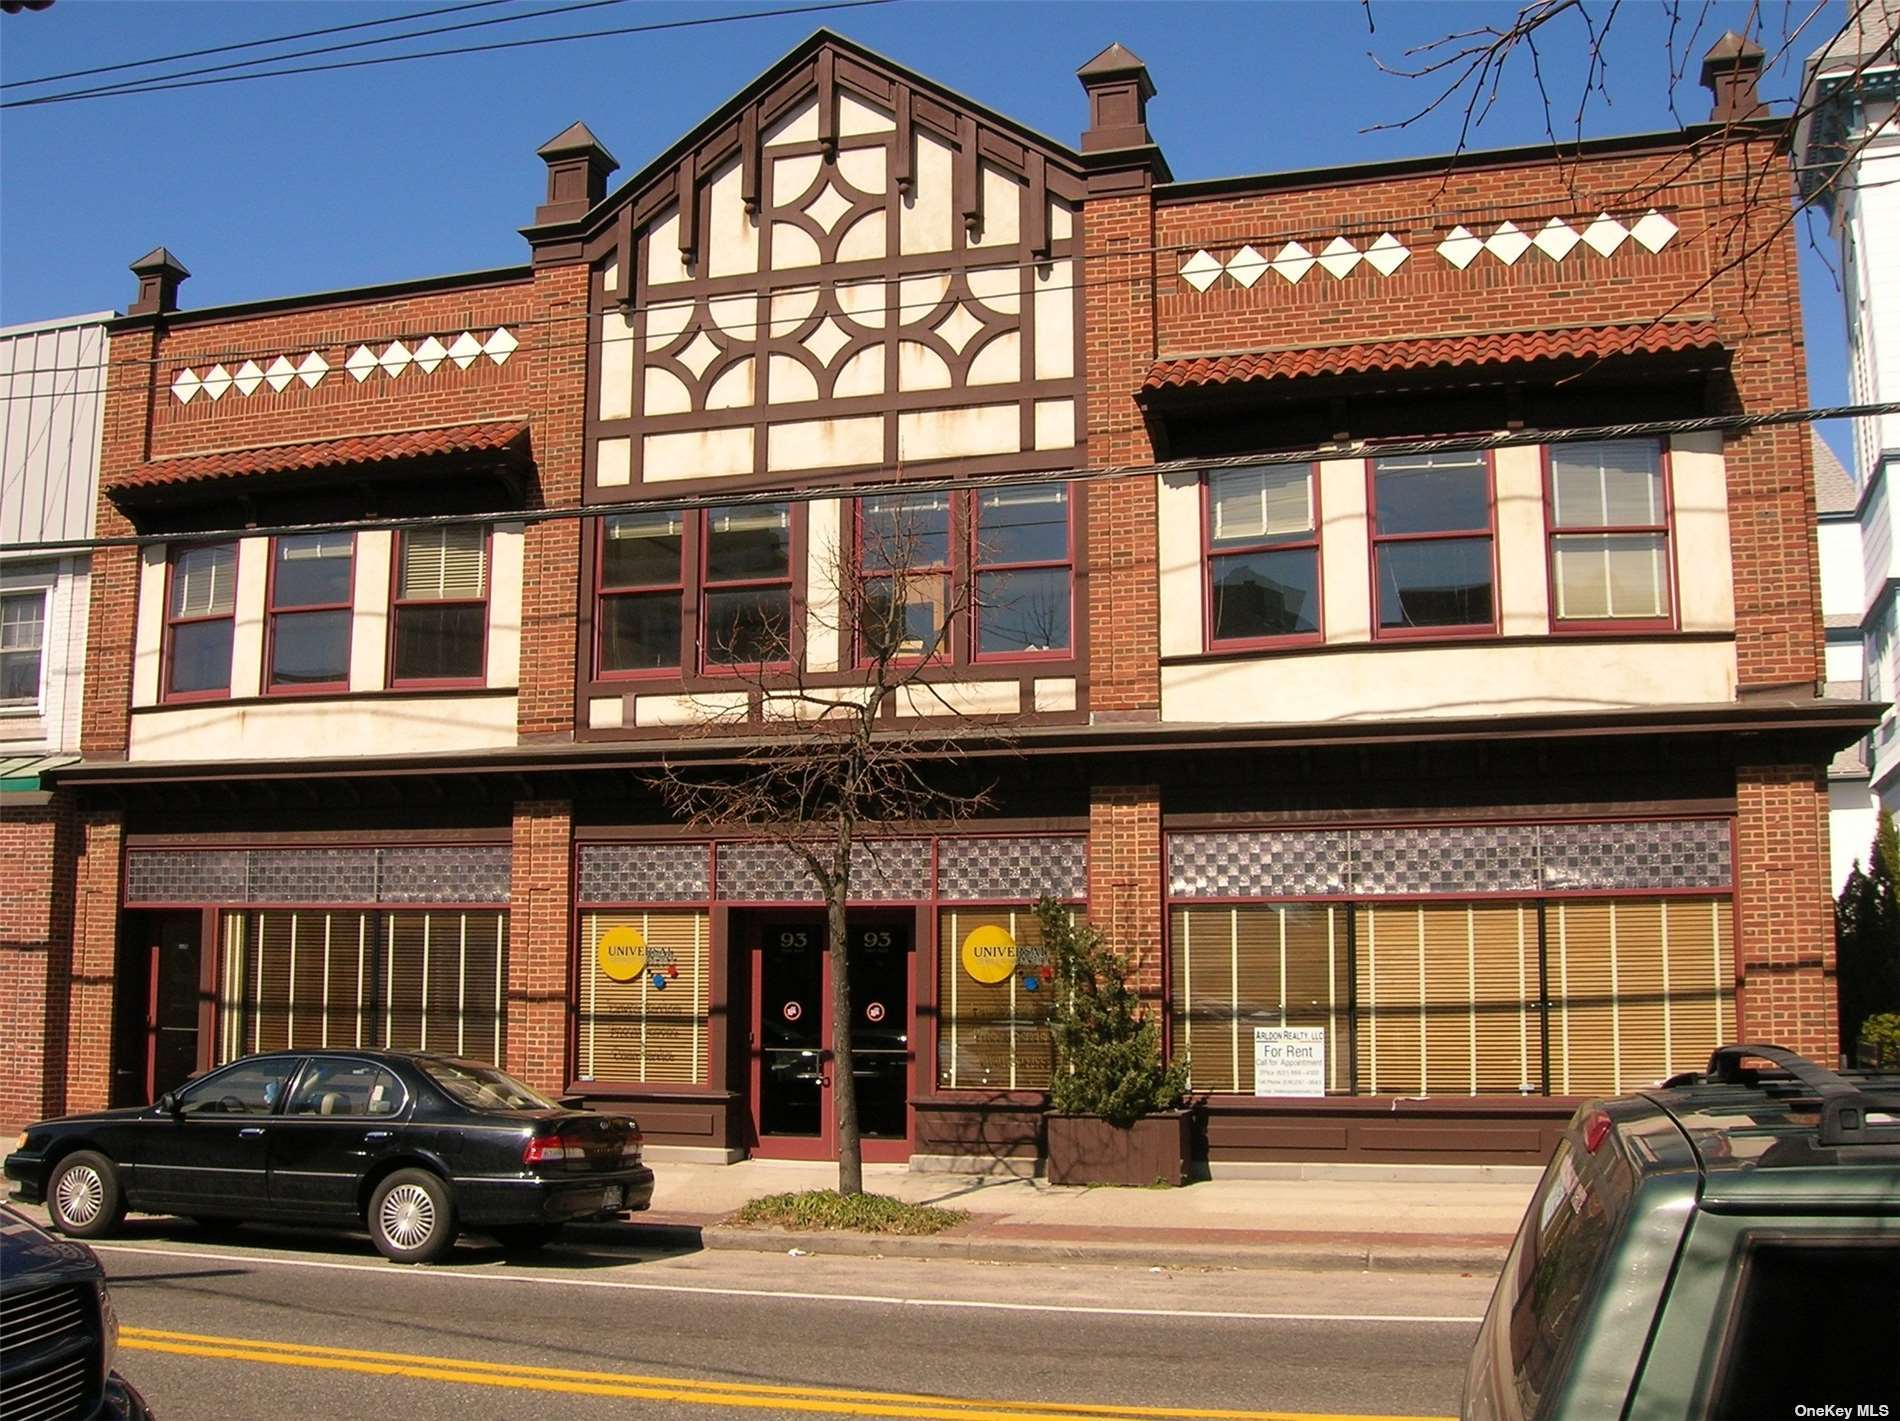 1st Floor 4,700+/- Square Foot Space for Lease in Renovated Historic Building in the Downtown Business District on Main Street, Bay Shore.  Suitable for Medical, Retail, Office or Food Services/Restaurant.  Owner Will Build to Suit. Front and Rear Entrance.  Plenty of Parking in Rear with Some Dedicated Spots and Shared Parking in Municipal Lots. Conveniently Located Just .3 Miles West of South Shore University Hospital.